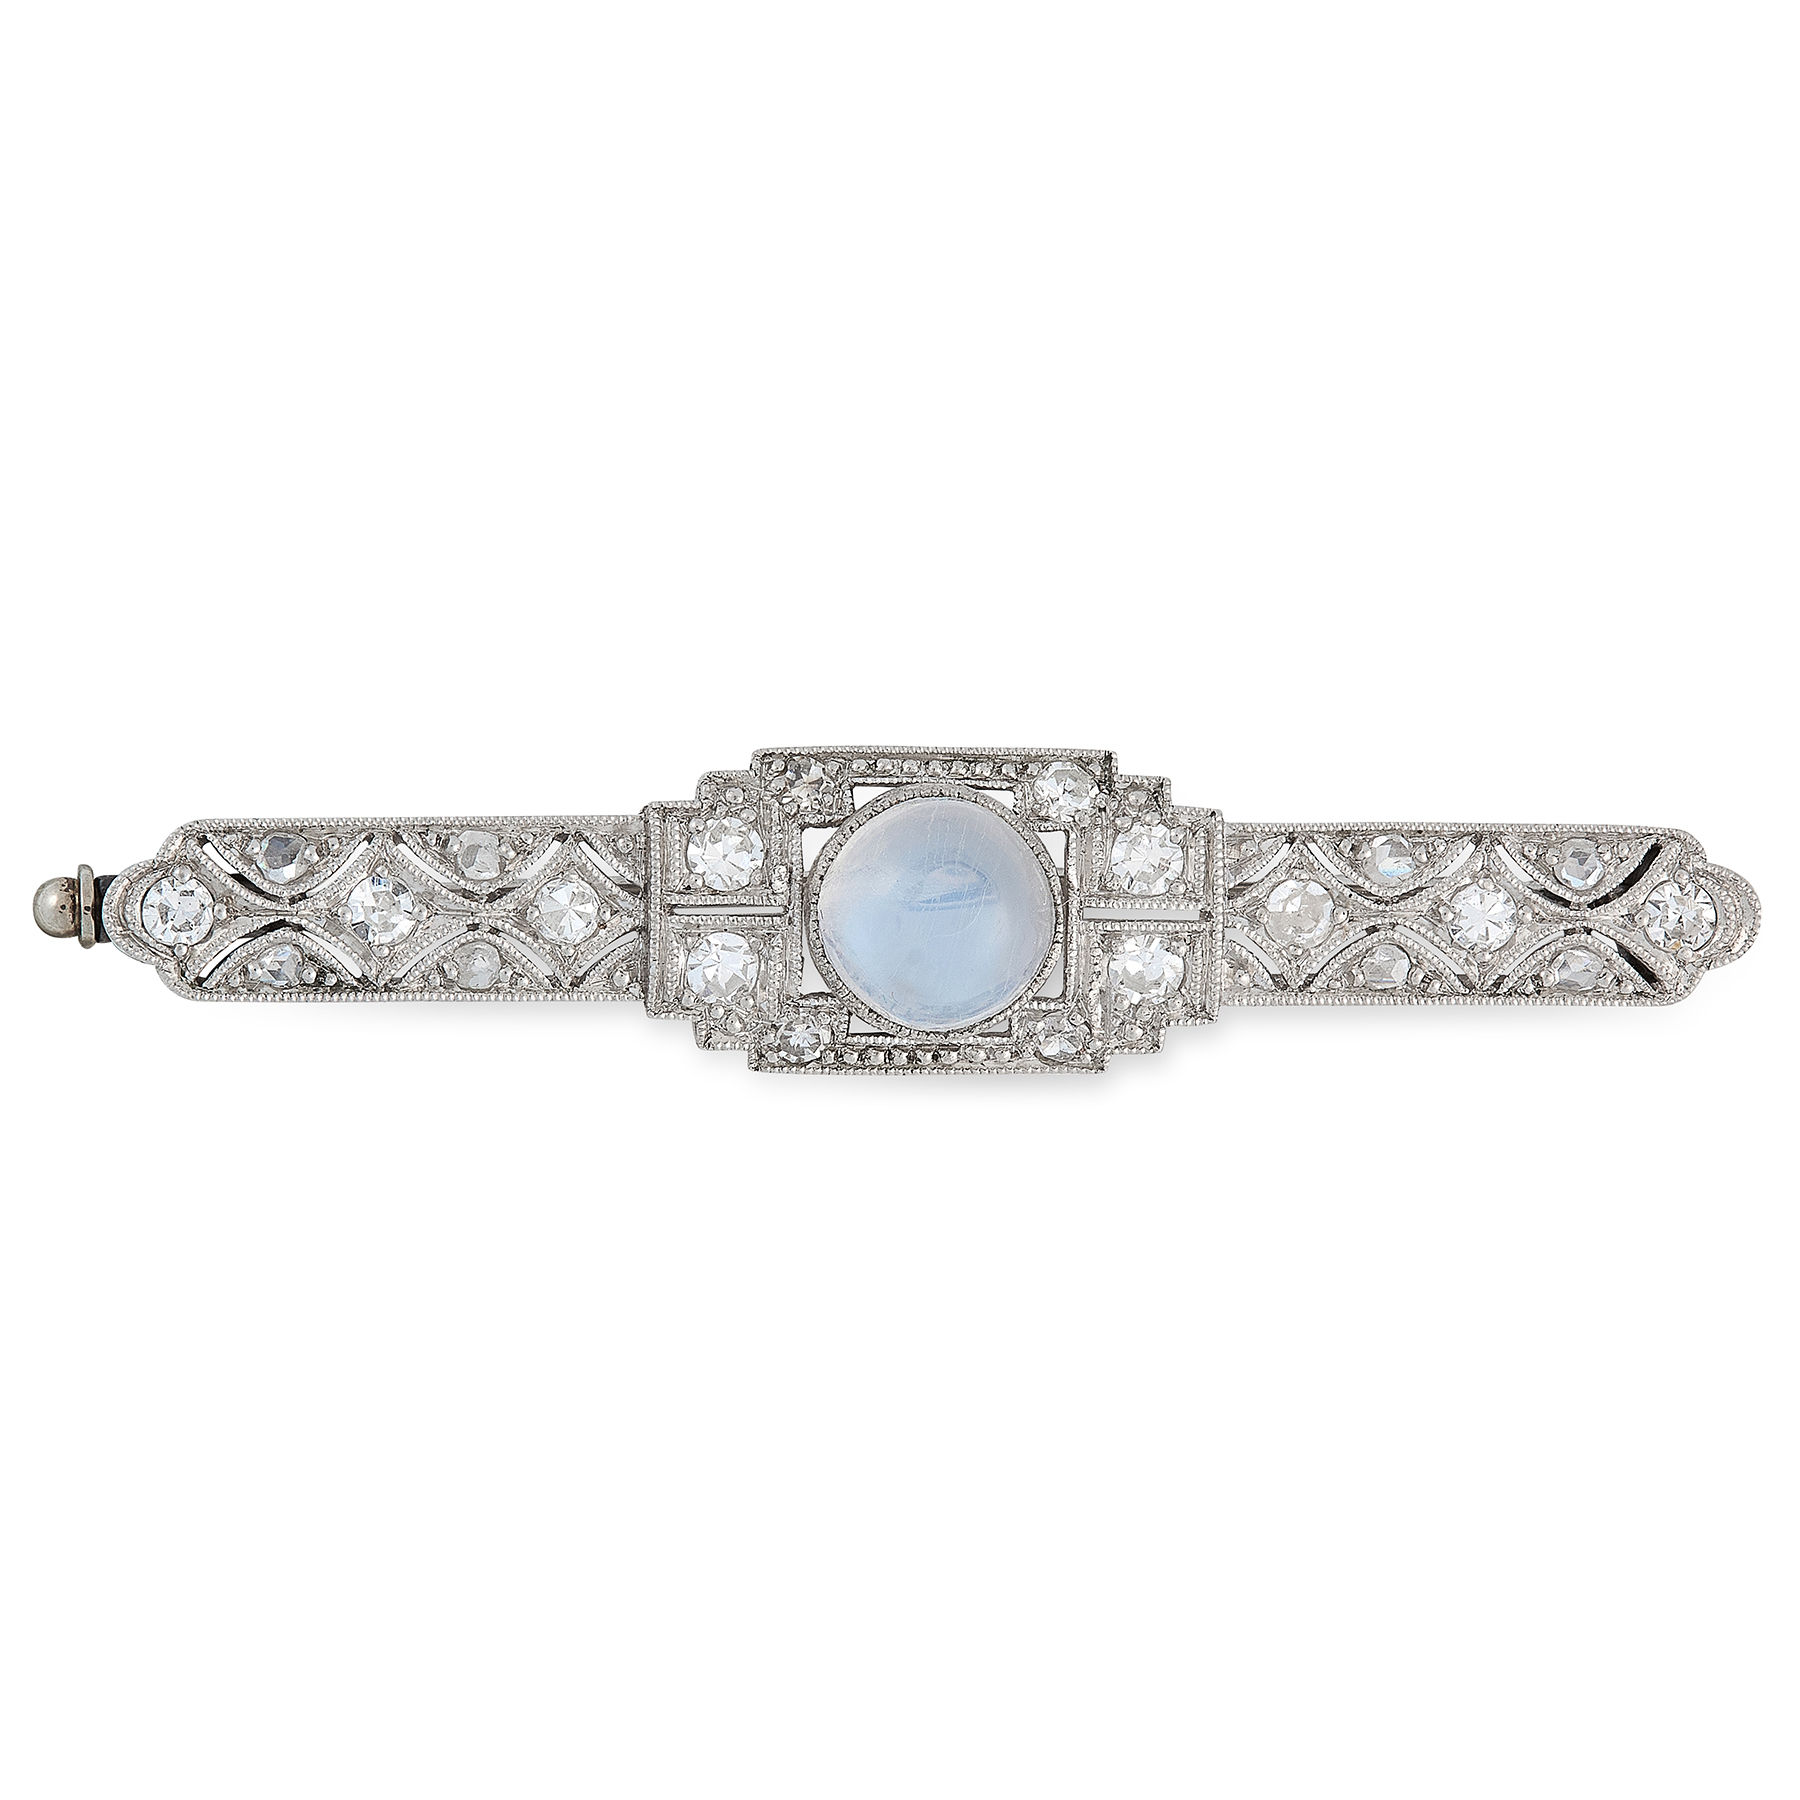 AN ART DECO MOONSTONE AND DIAMOND BROOCH, EARLY 20TH CENTURY set with a round cabochon moonstone